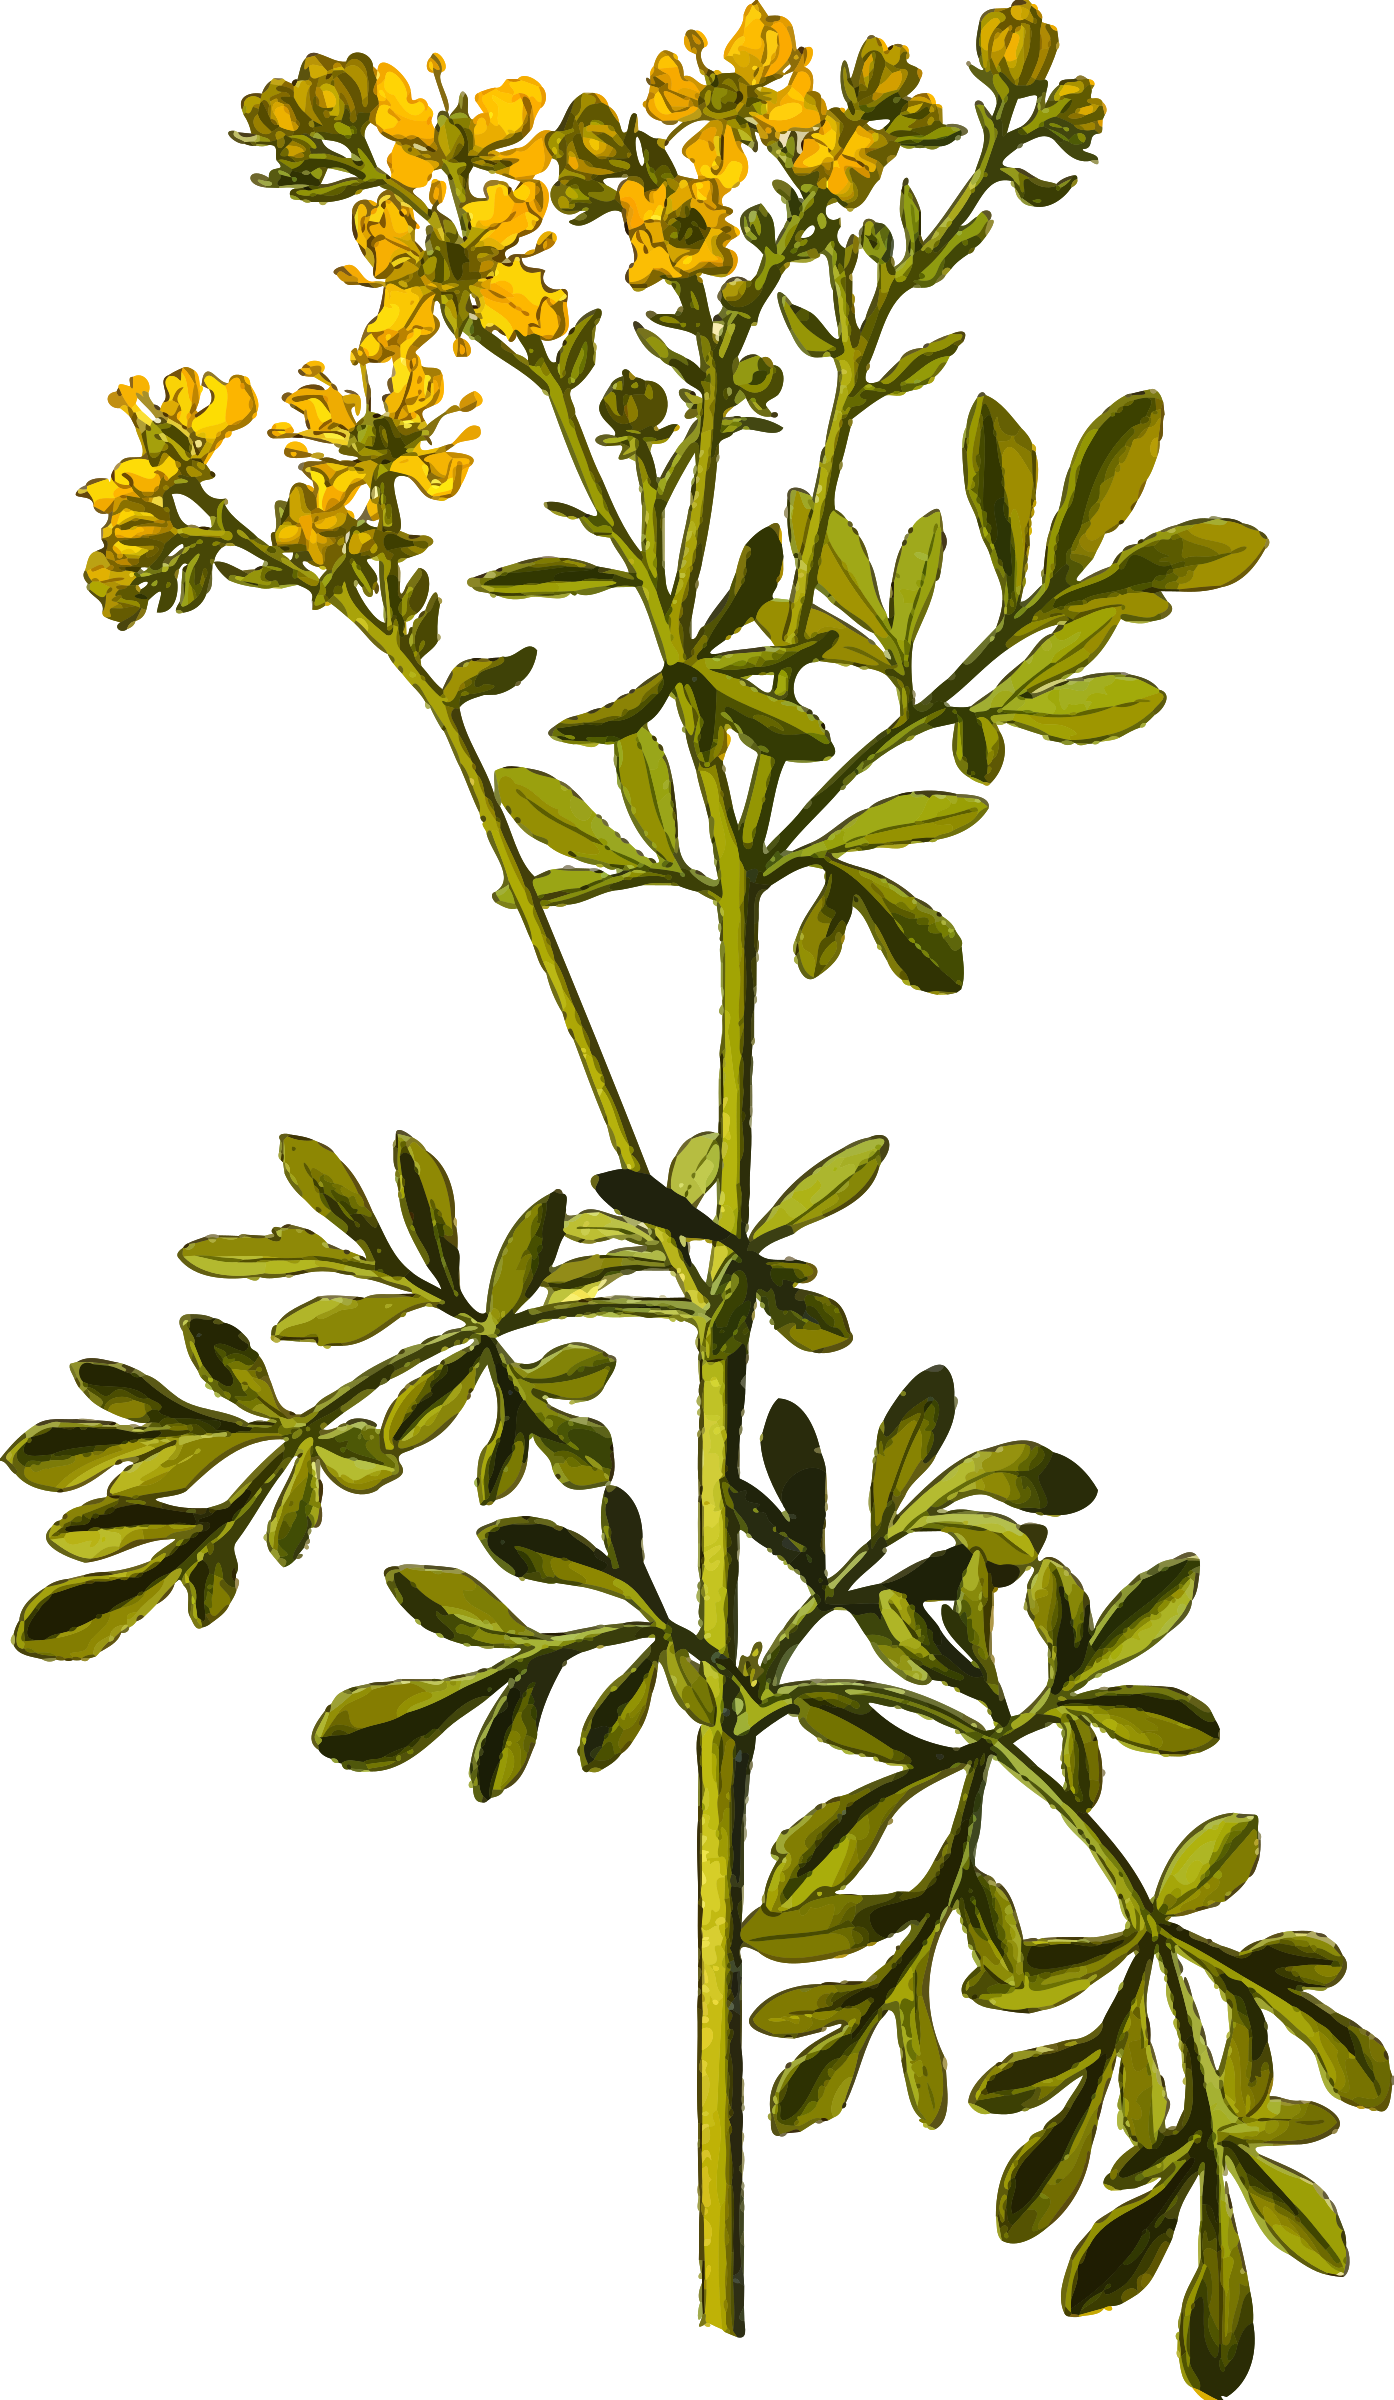 Common rue (detailed) by Firkin